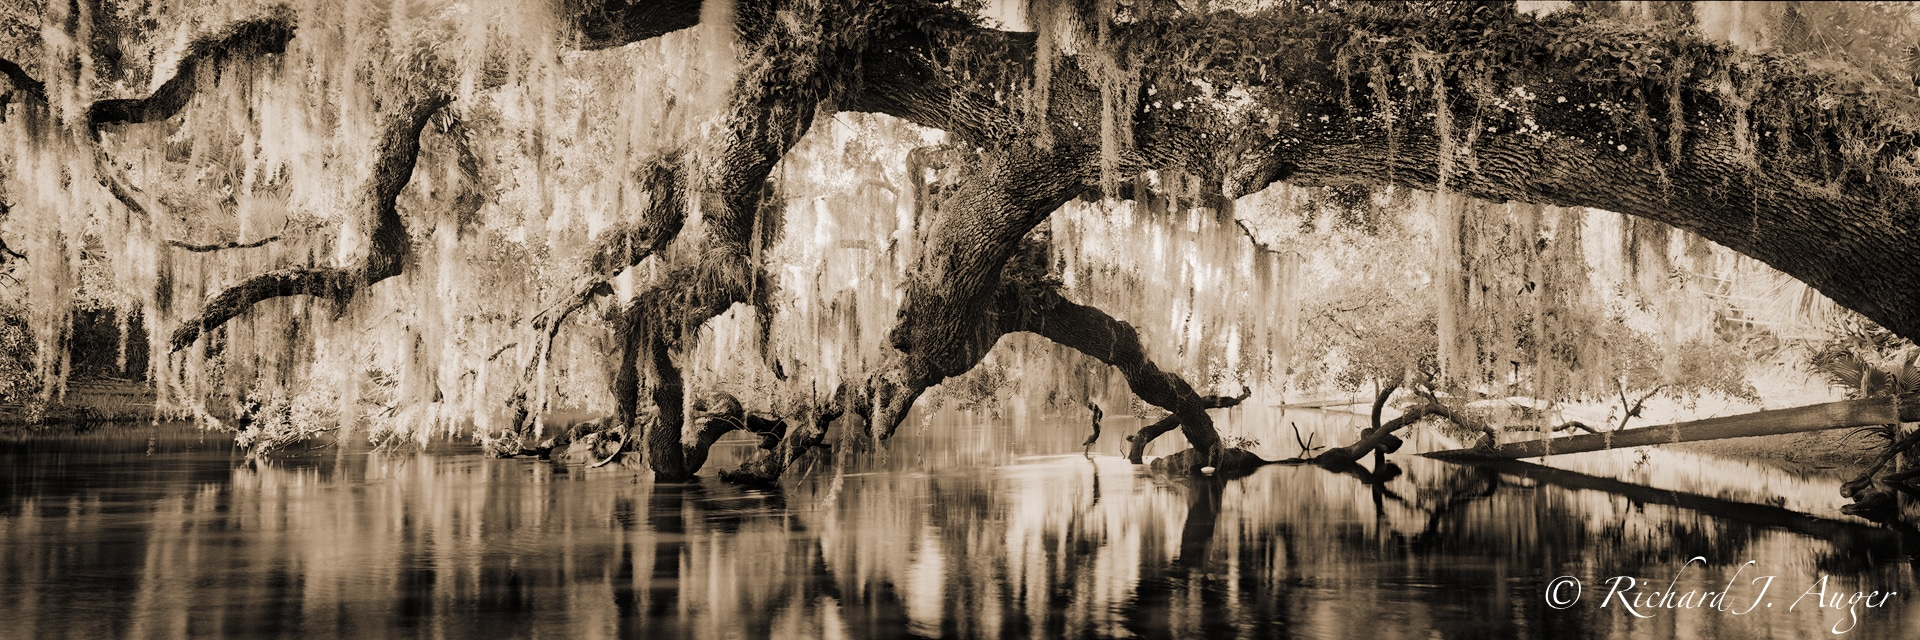 St Johns River, Oak Tree, Reflections, water, swamp, photograph, landscape, sepia tone, black and white, panorama